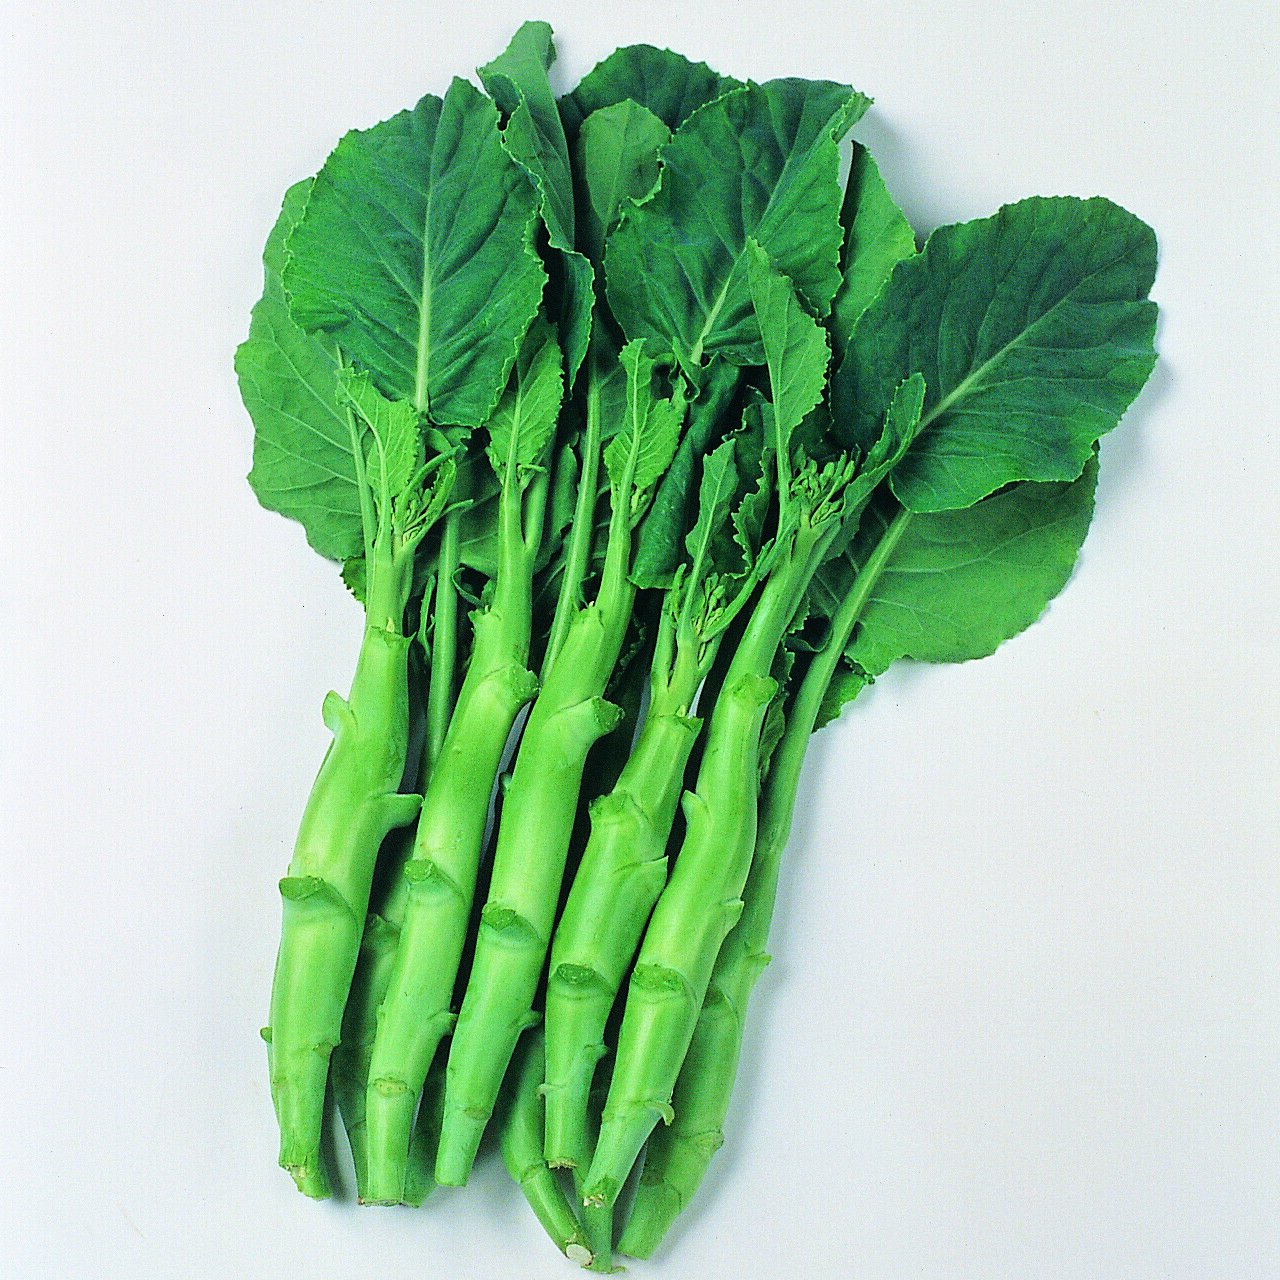 KAILAAN Chinese Kale Broccoli 100 Seeds